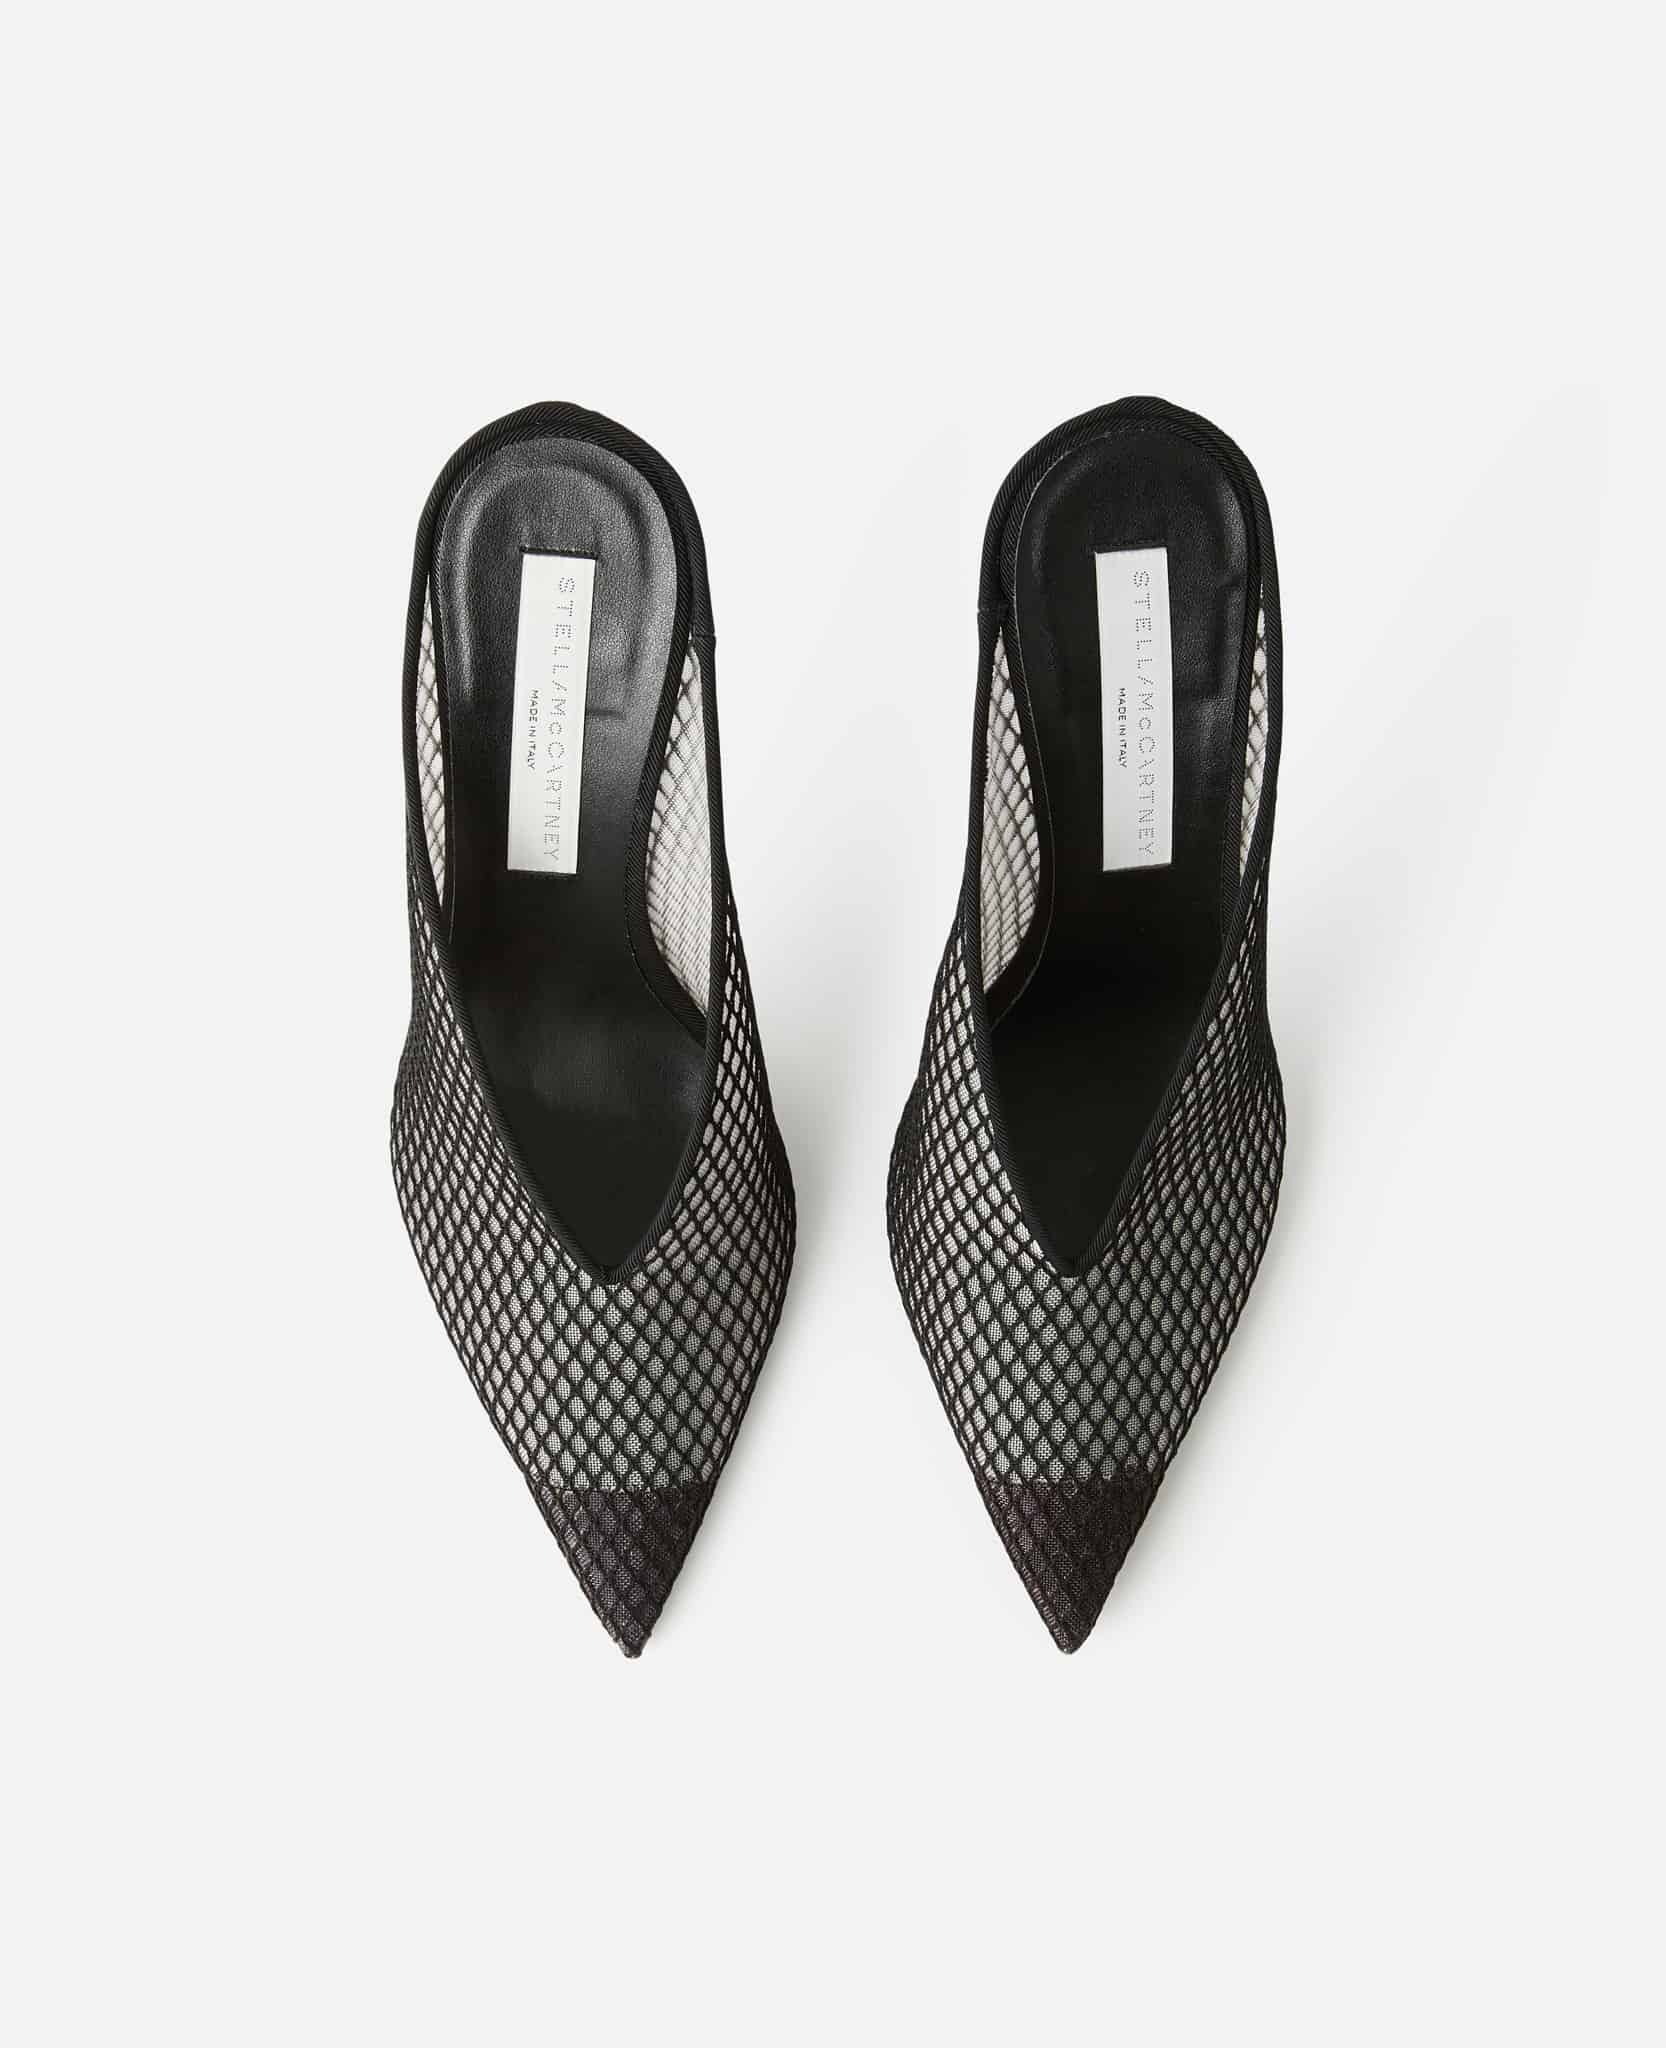 Stella McCartney Vegan High Heels